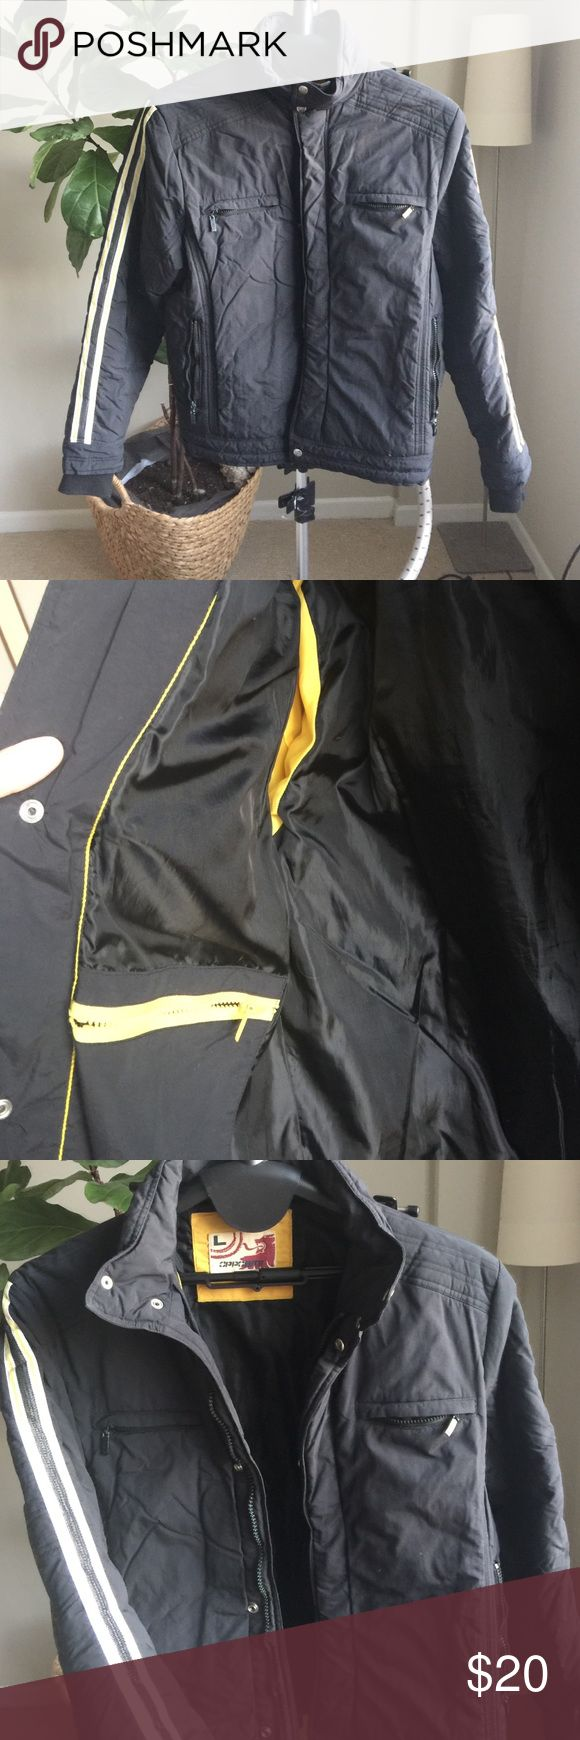 Men's Biker jacket My husband wants to Posh! This is a motto jacket he got in Chile. Very warm and wind proof. Jackets & Coats Puffers